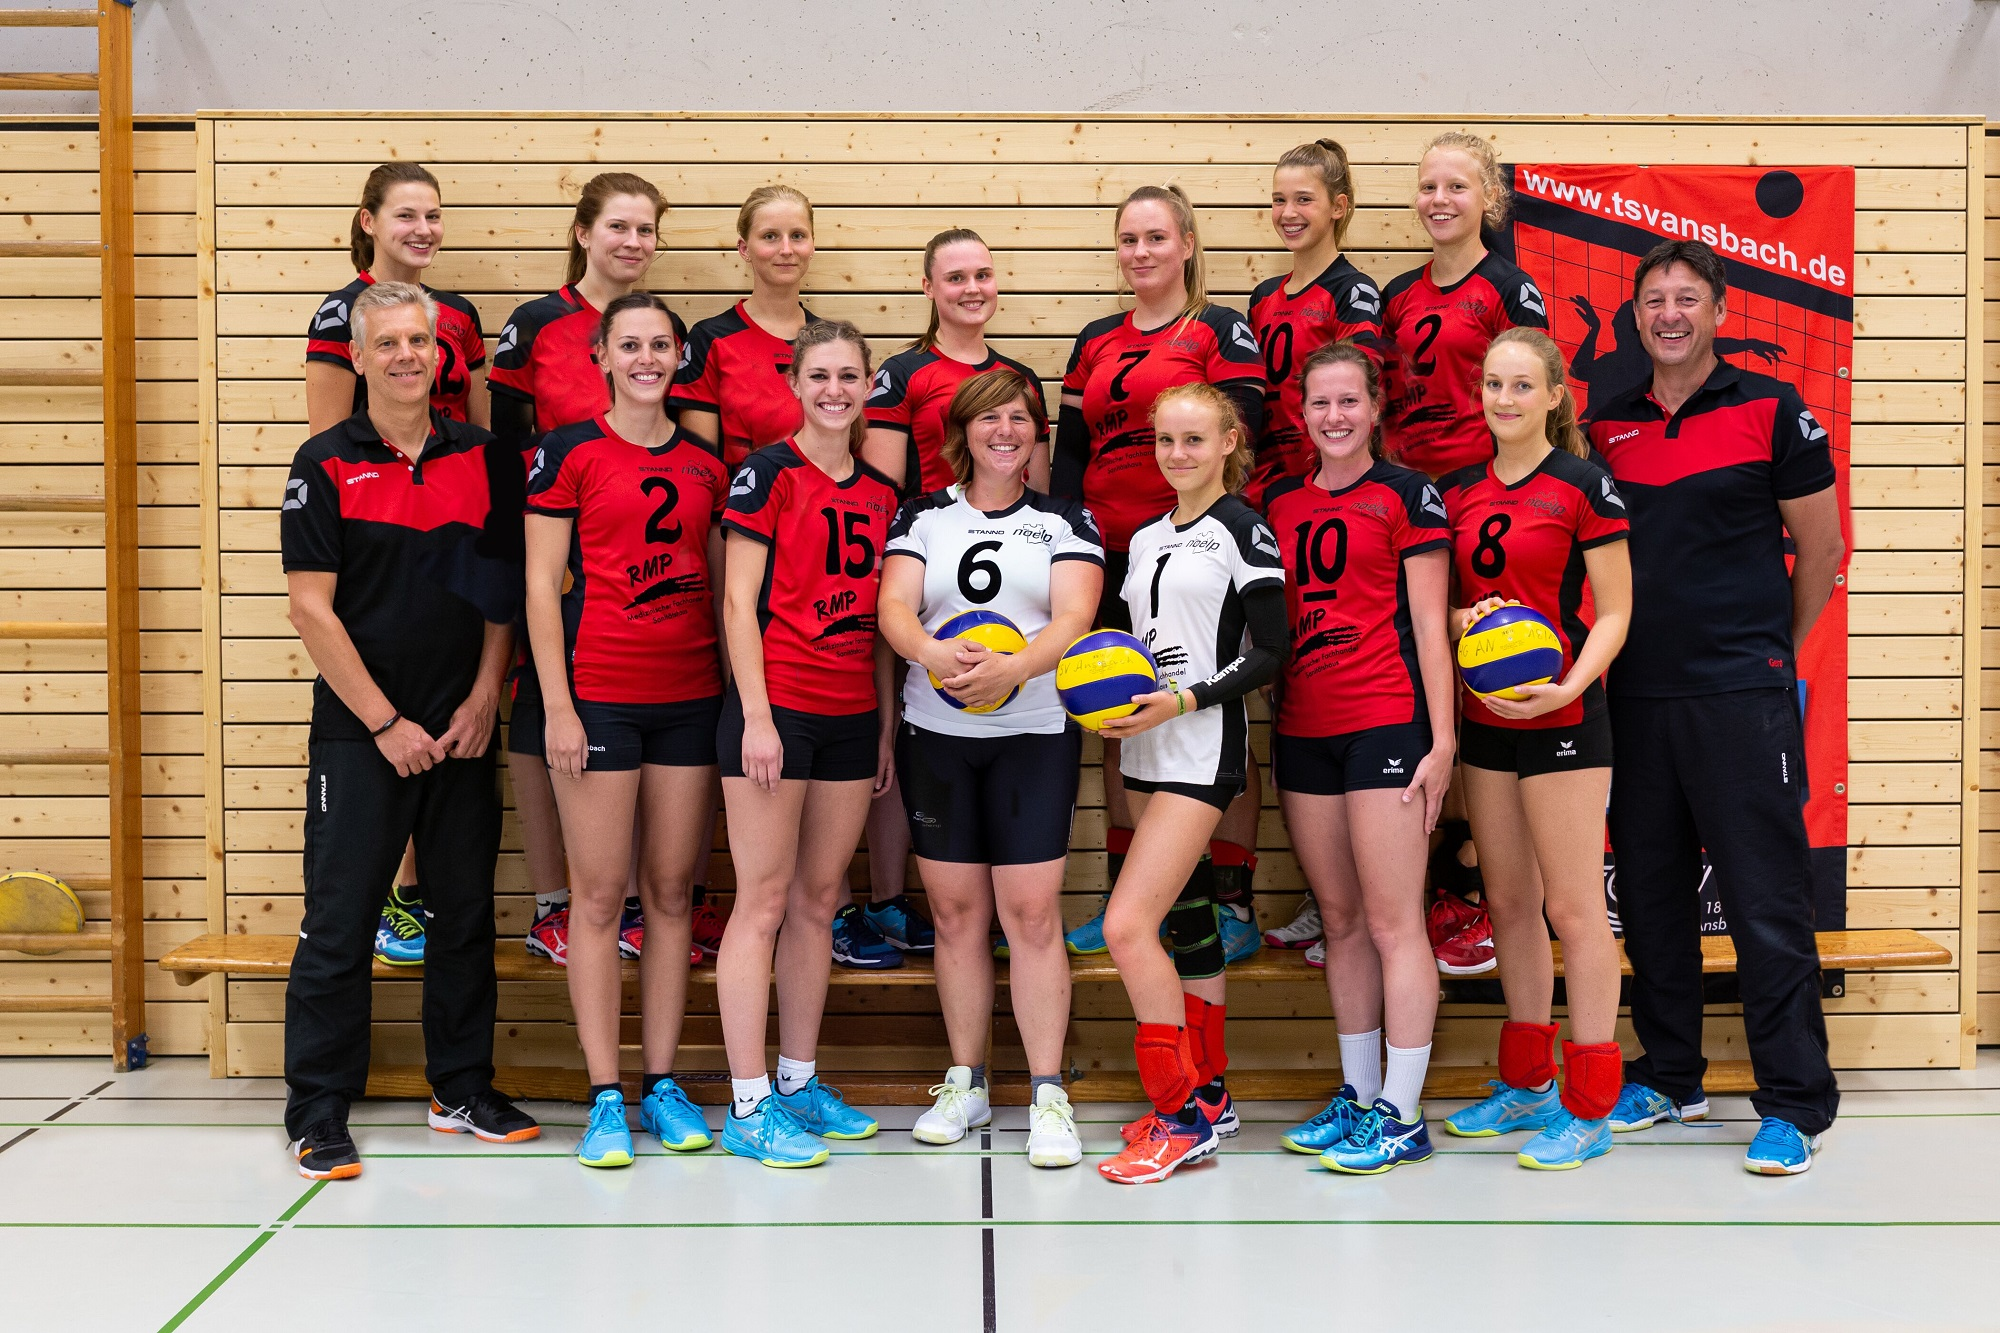 Volleyball Landesliga